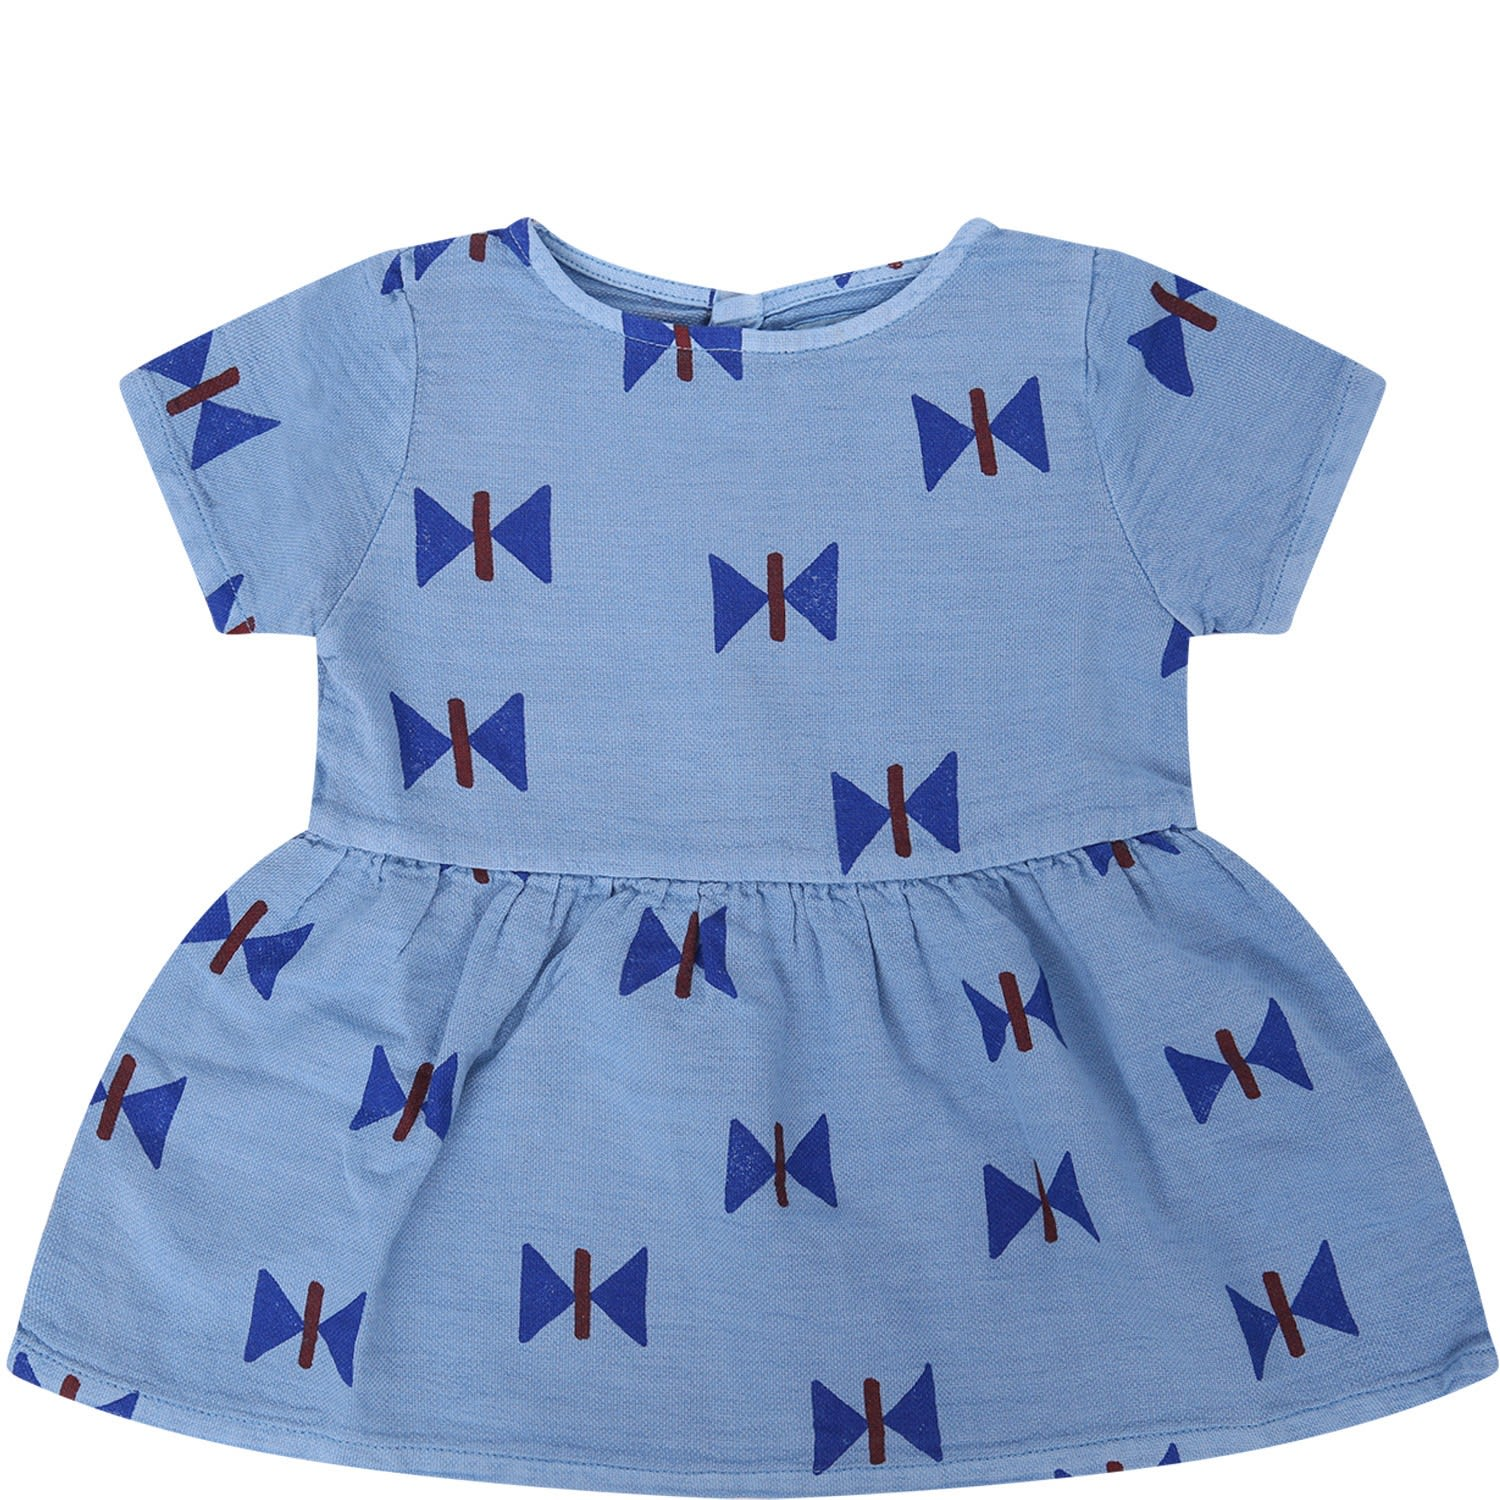 Photo of  Bobo Choses Sky Blue Girl Dress With Styles Butterflies- shop Bobo Choses  online sales